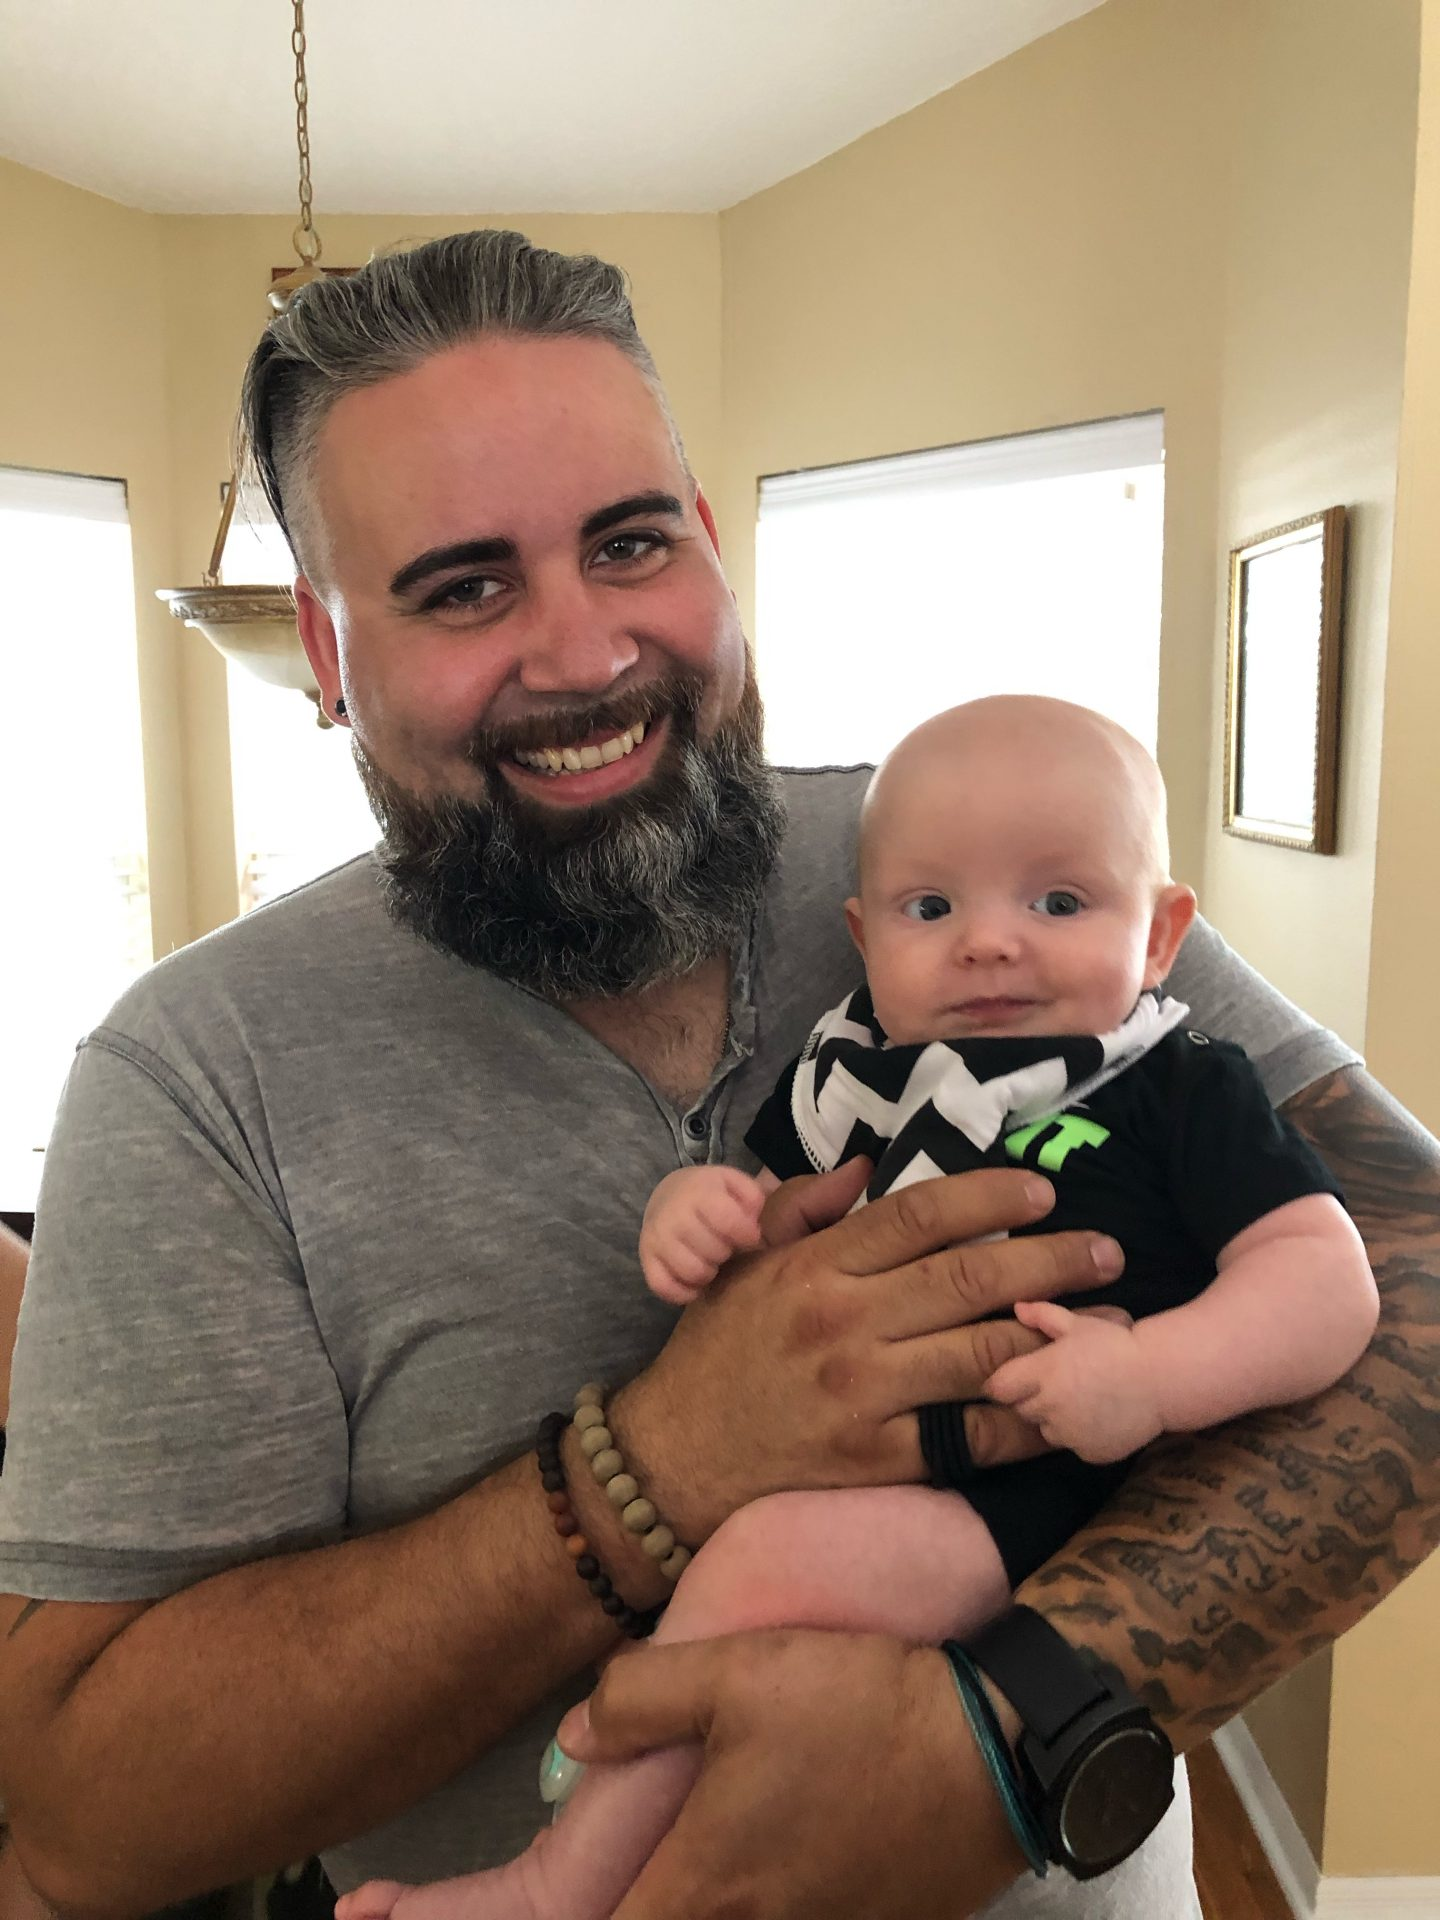 Jaxon meeting his cousin Brent for the first time He was a natural with babies!